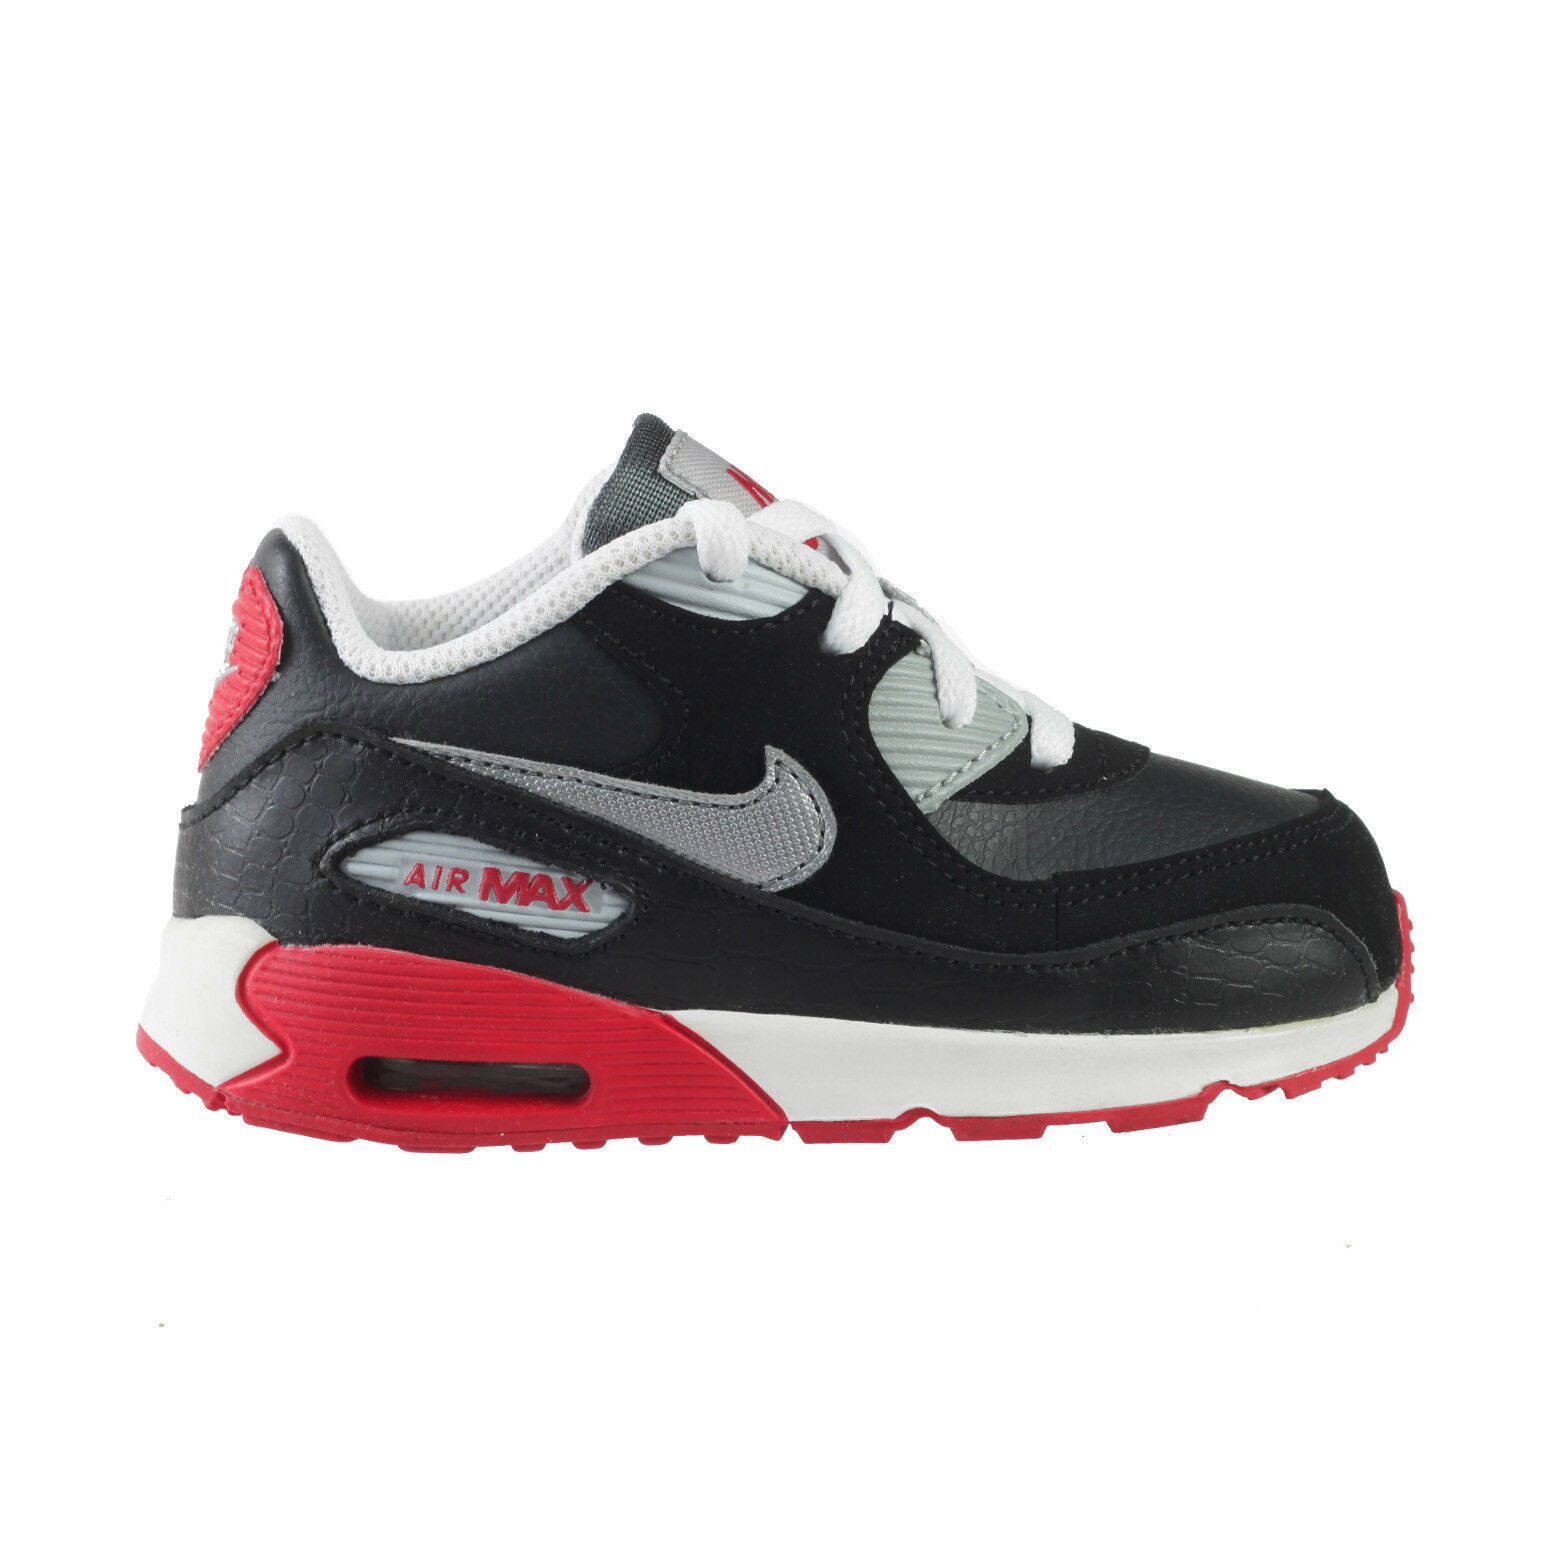 Nike Air Max 90 Toddlers 408110-079 Anthracite Black Pink Shoes Baby Size 2